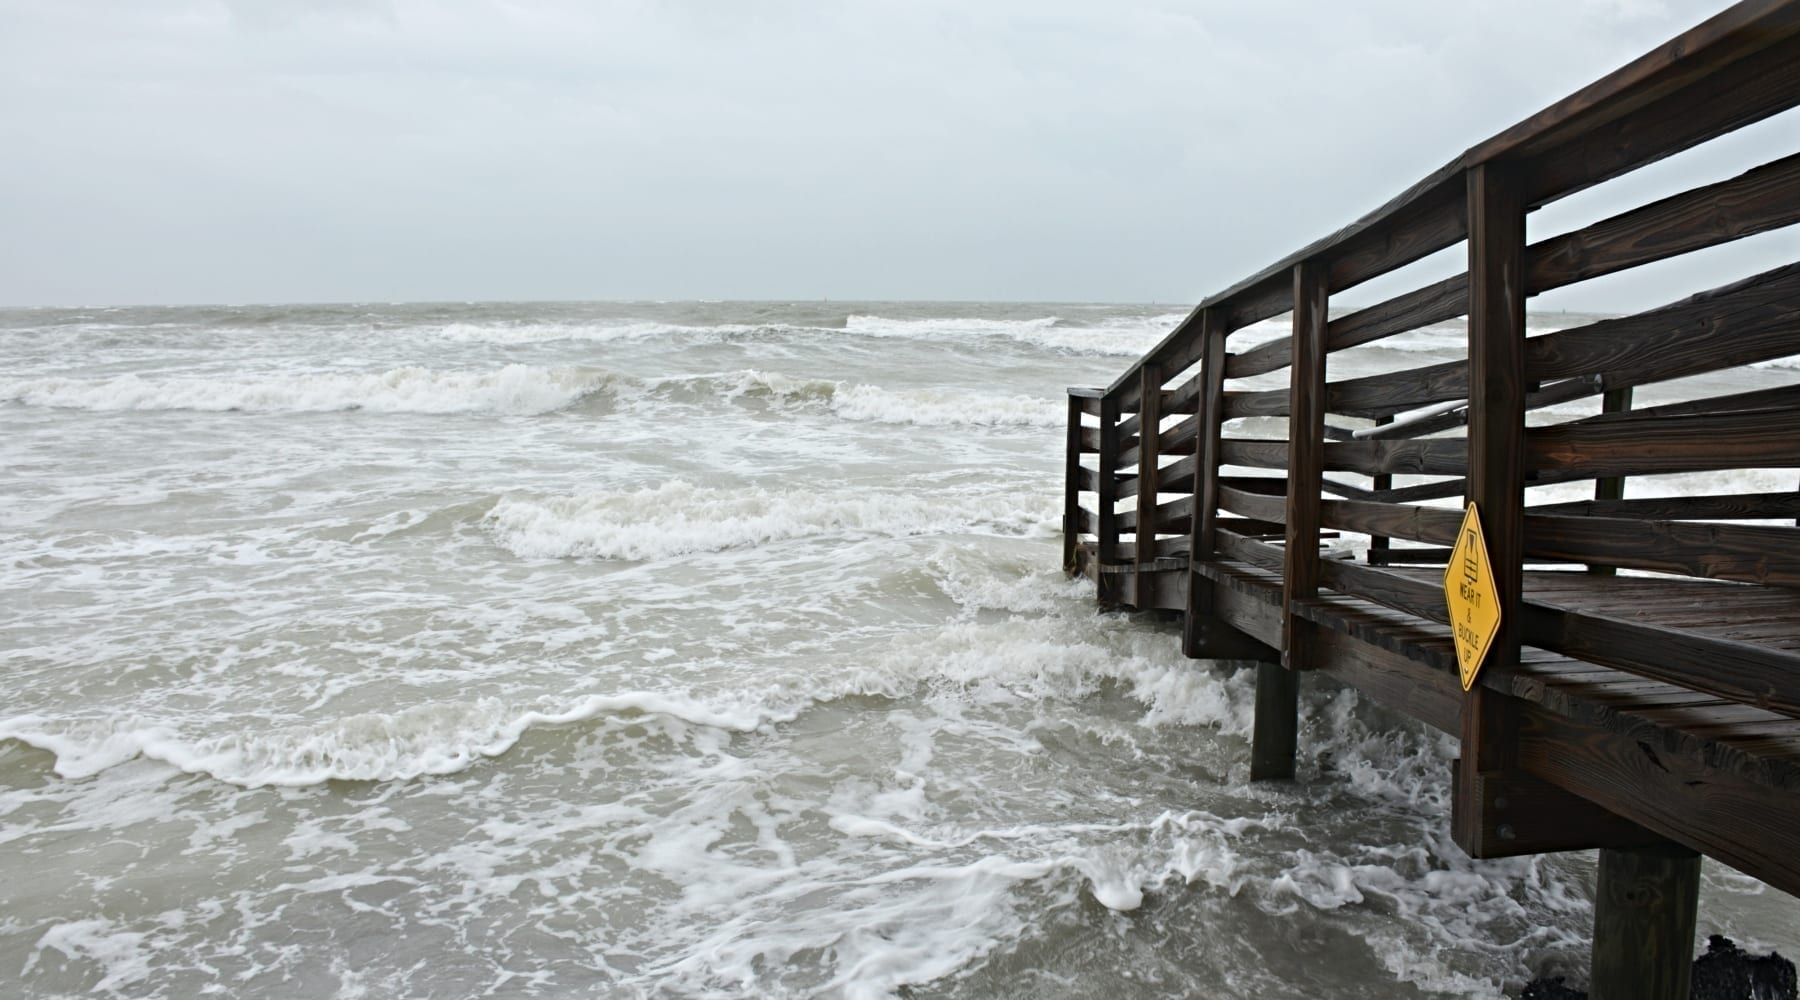 7 Truths to Help You Survive Life After the Storm